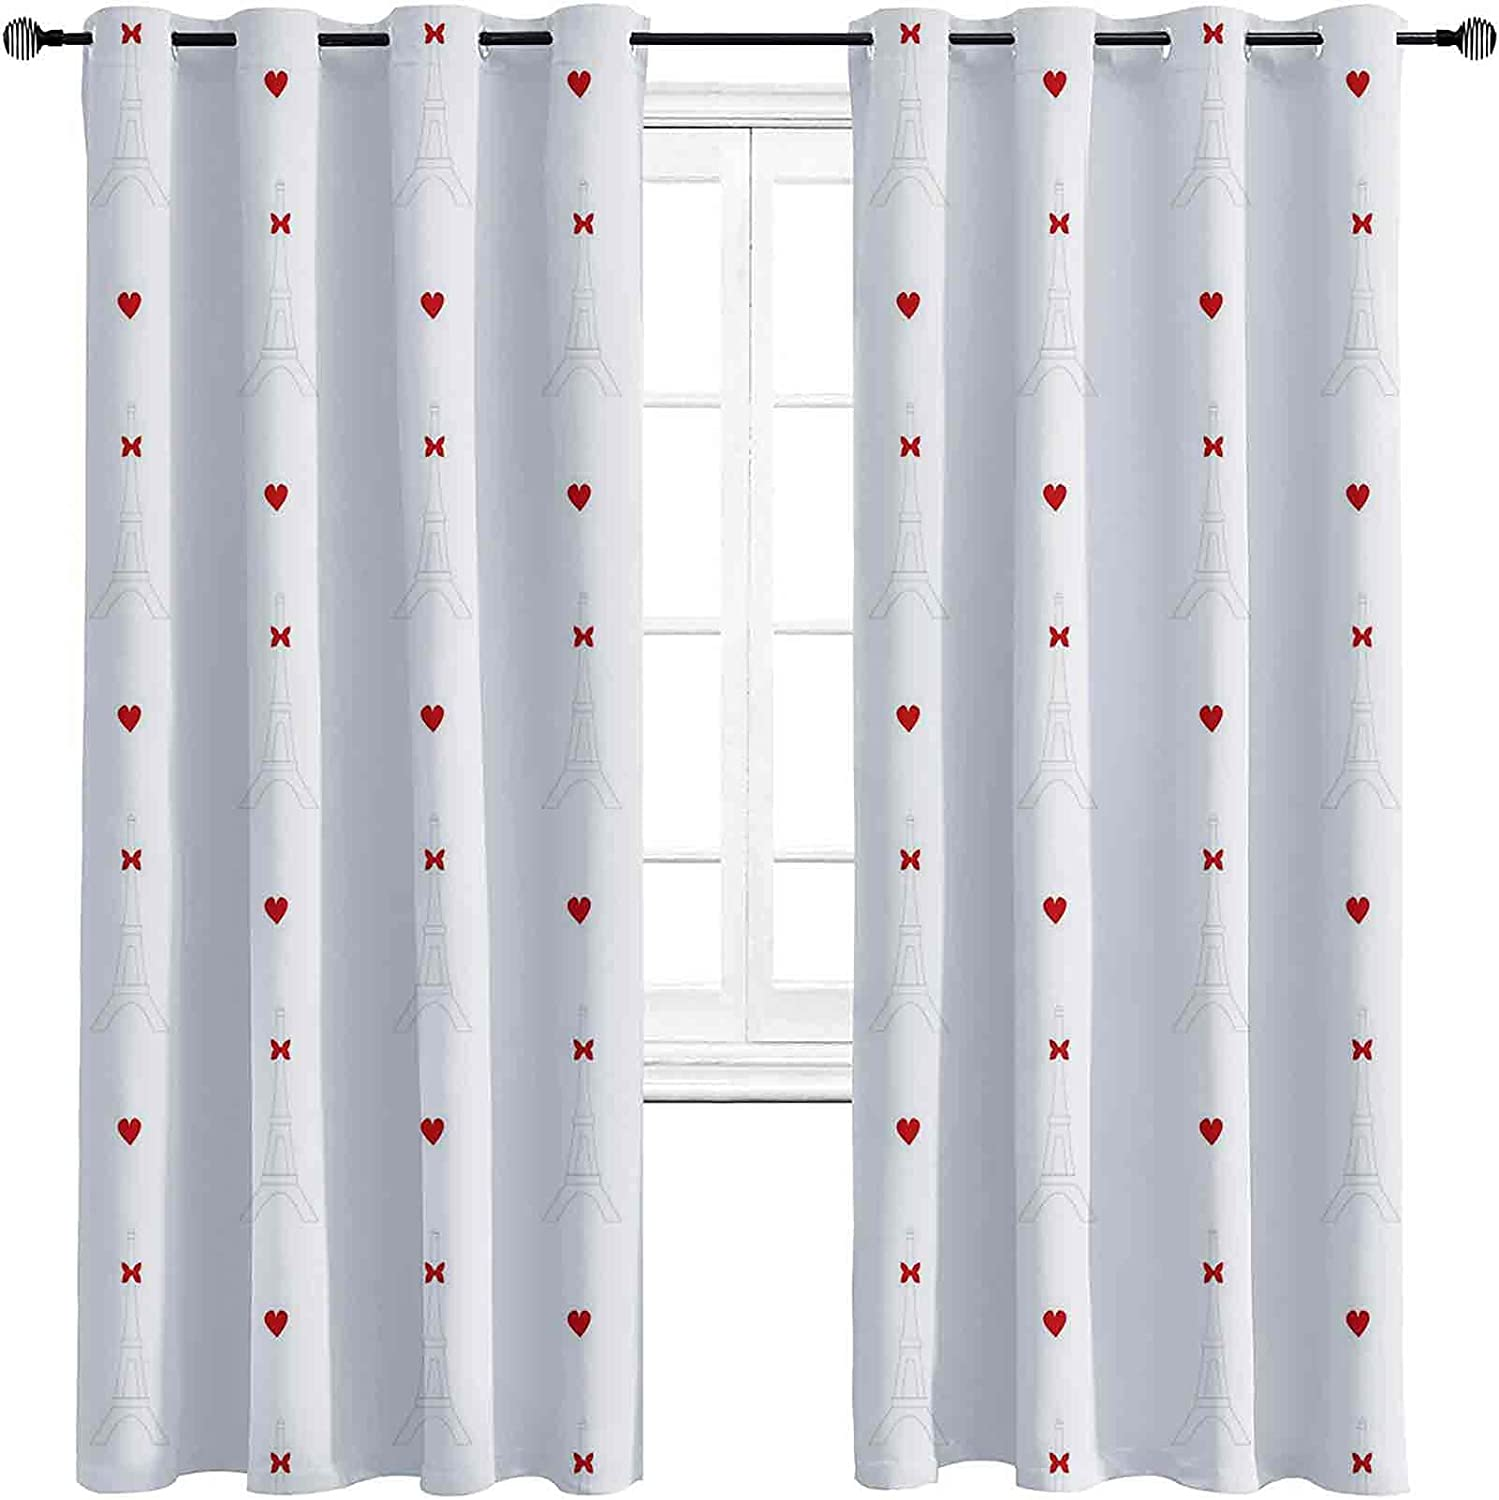 Eiffel Blackout Curtains Max SEAL limited product 65% OFF with Grommets Simplistic Cute D darken